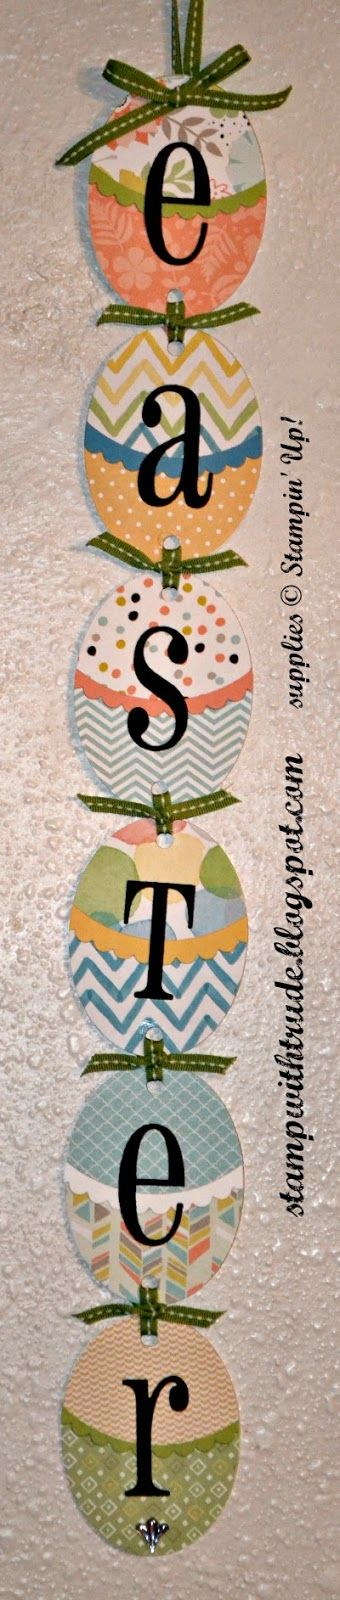 I used Maria Cameron's banner idea to make this updated version of the Stampin' Up! Easter banner.